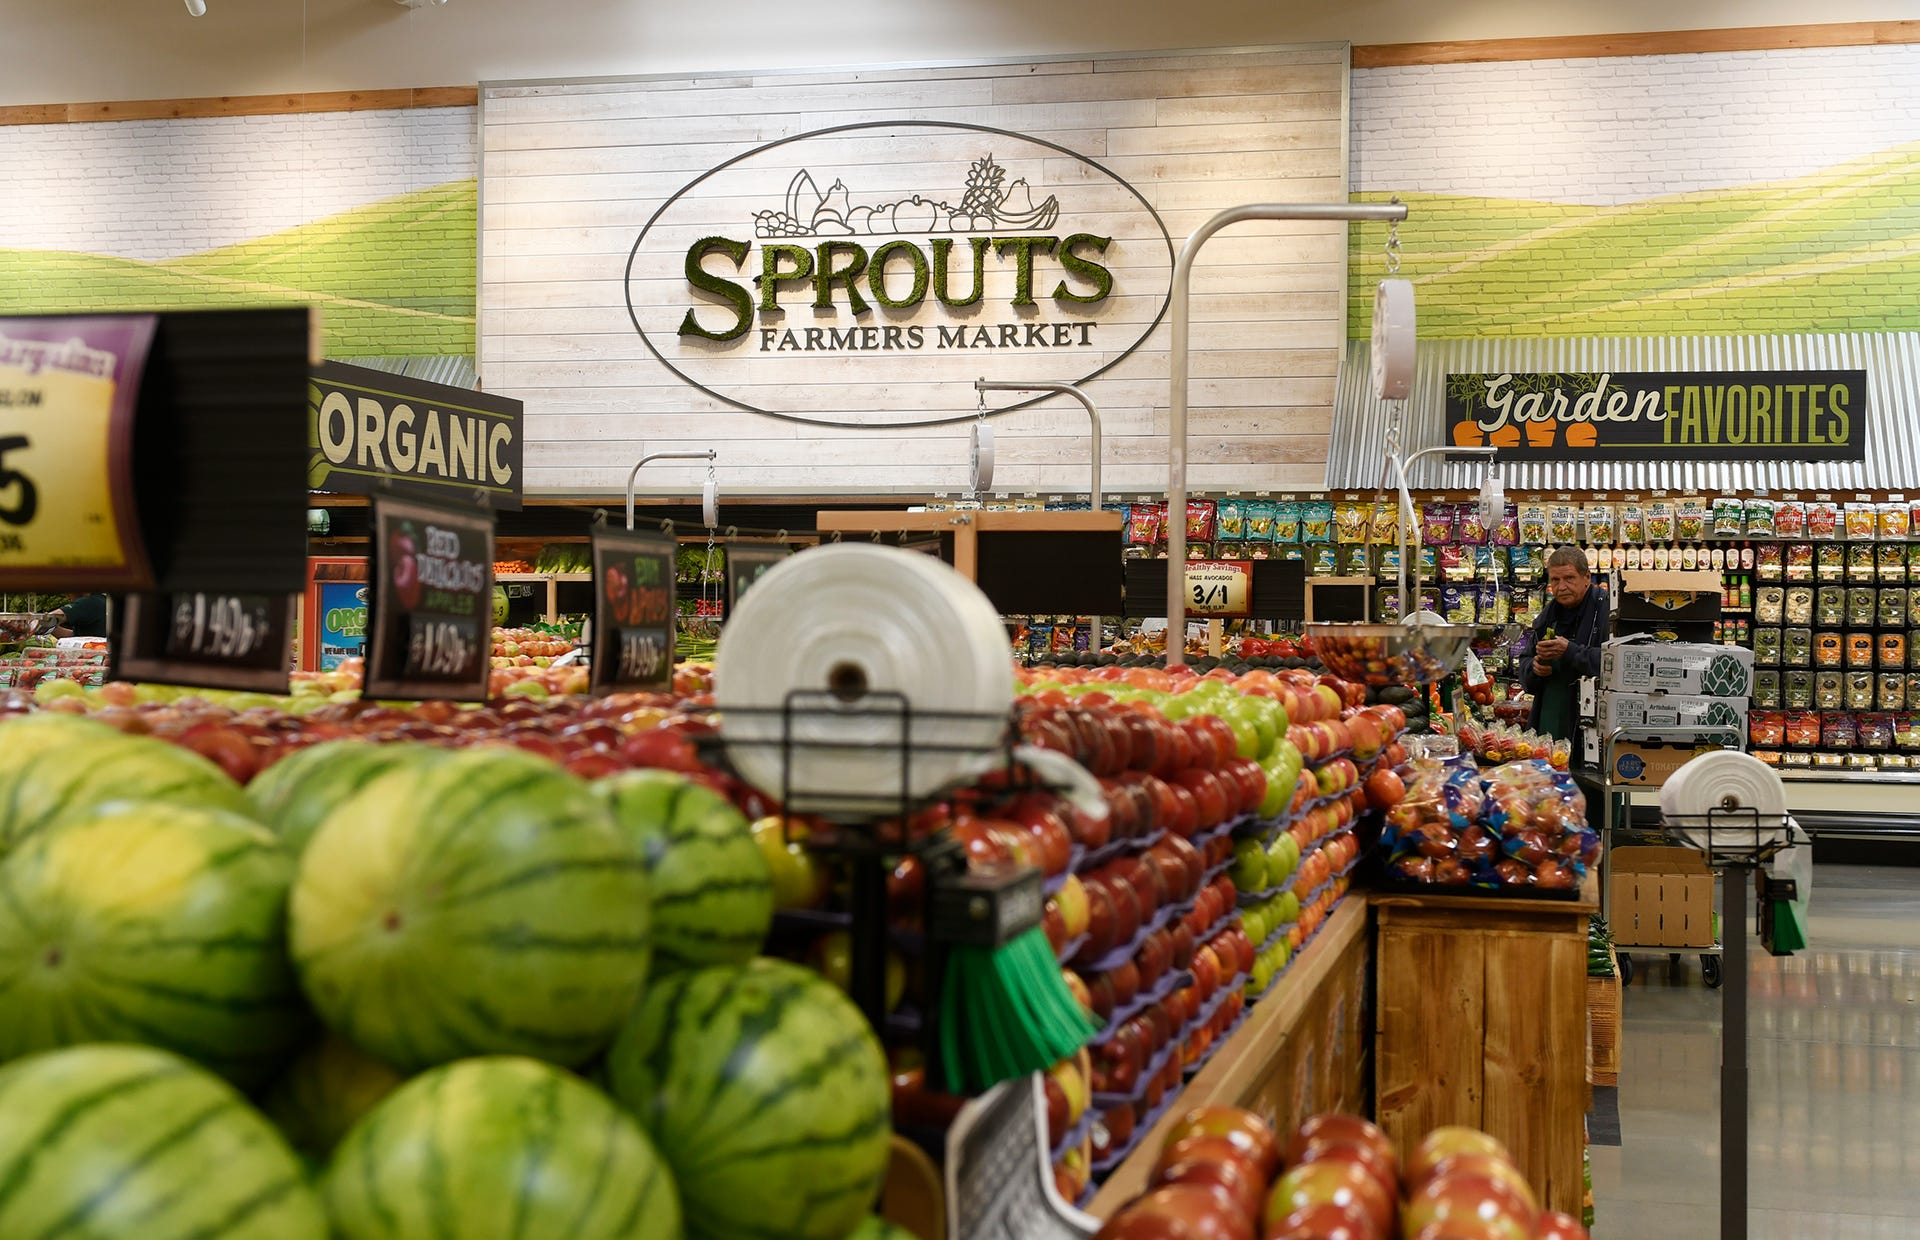 Photo of inside of Sprouts grocery store